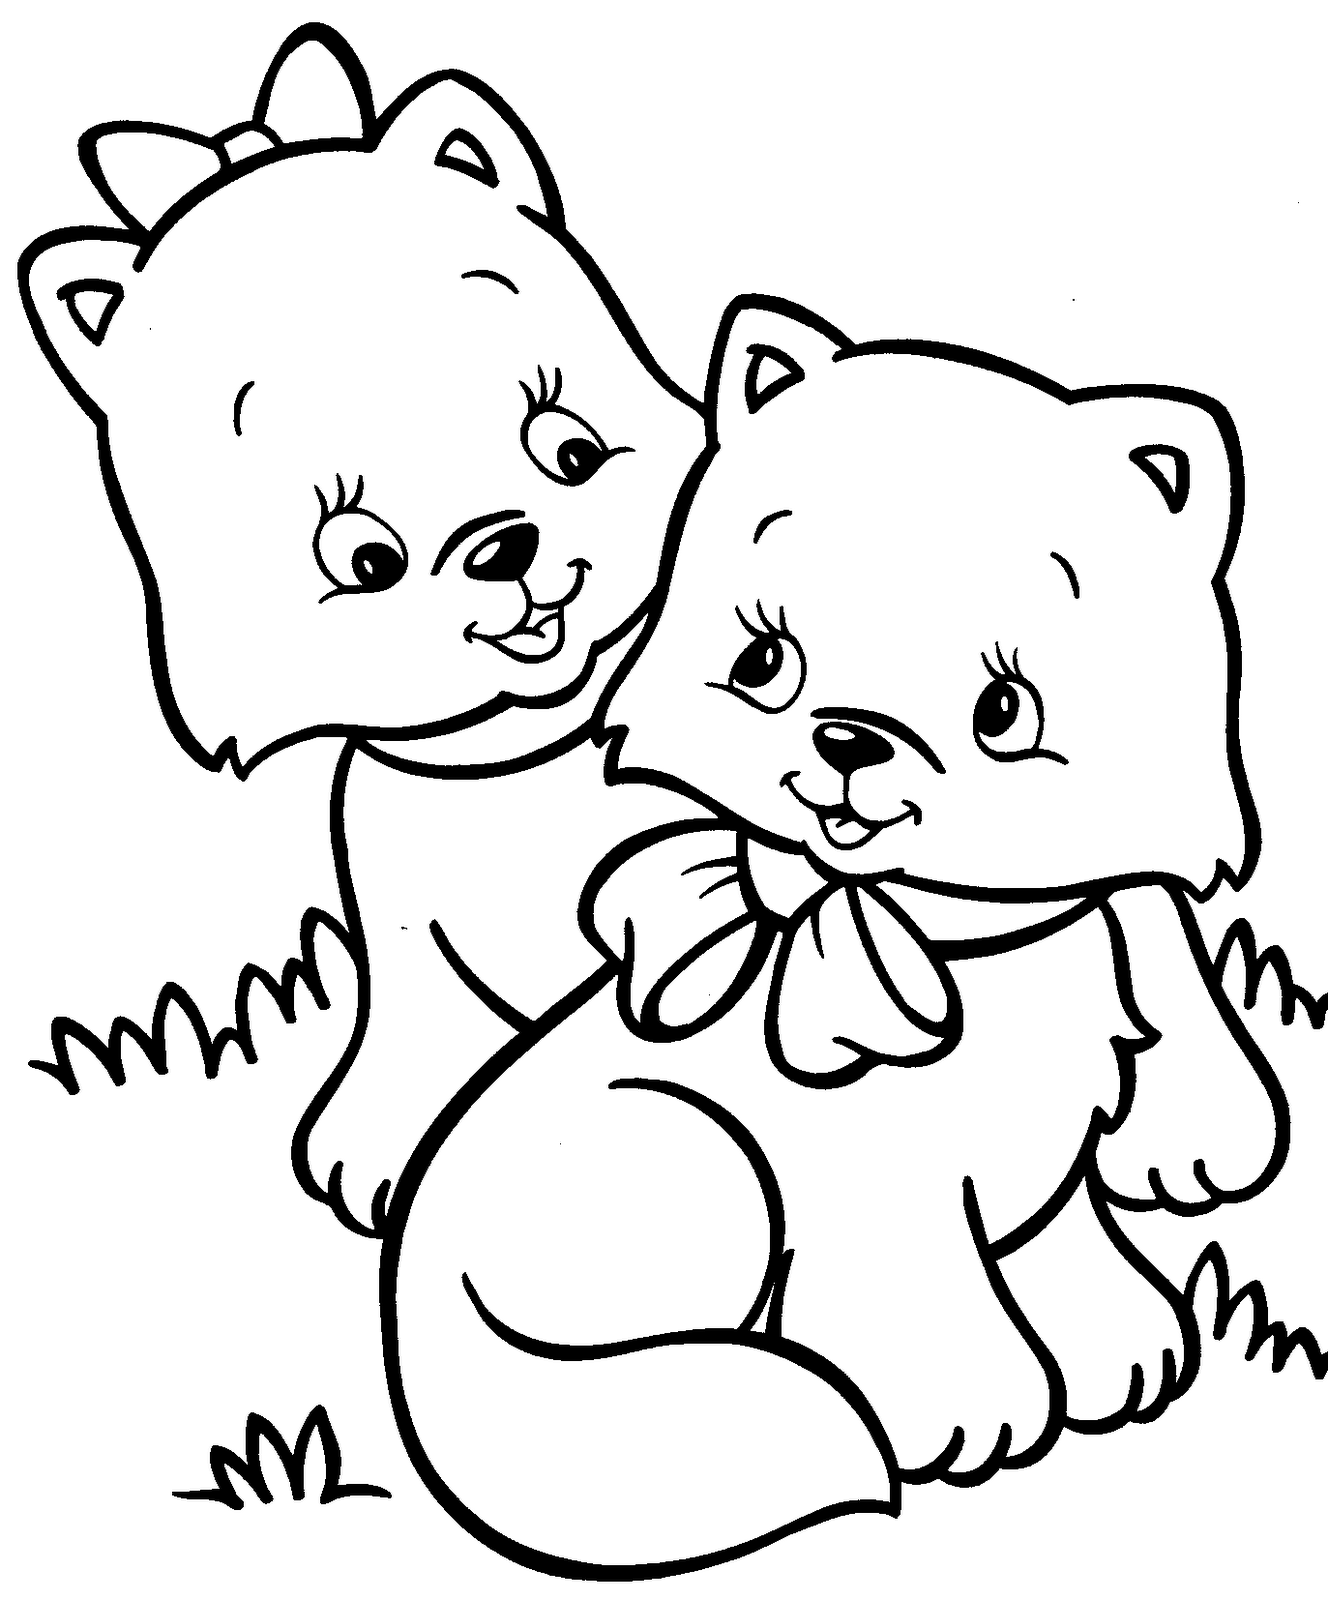 cat coloring book cat for kids simple drawing cats kids coloring pages cat book coloring